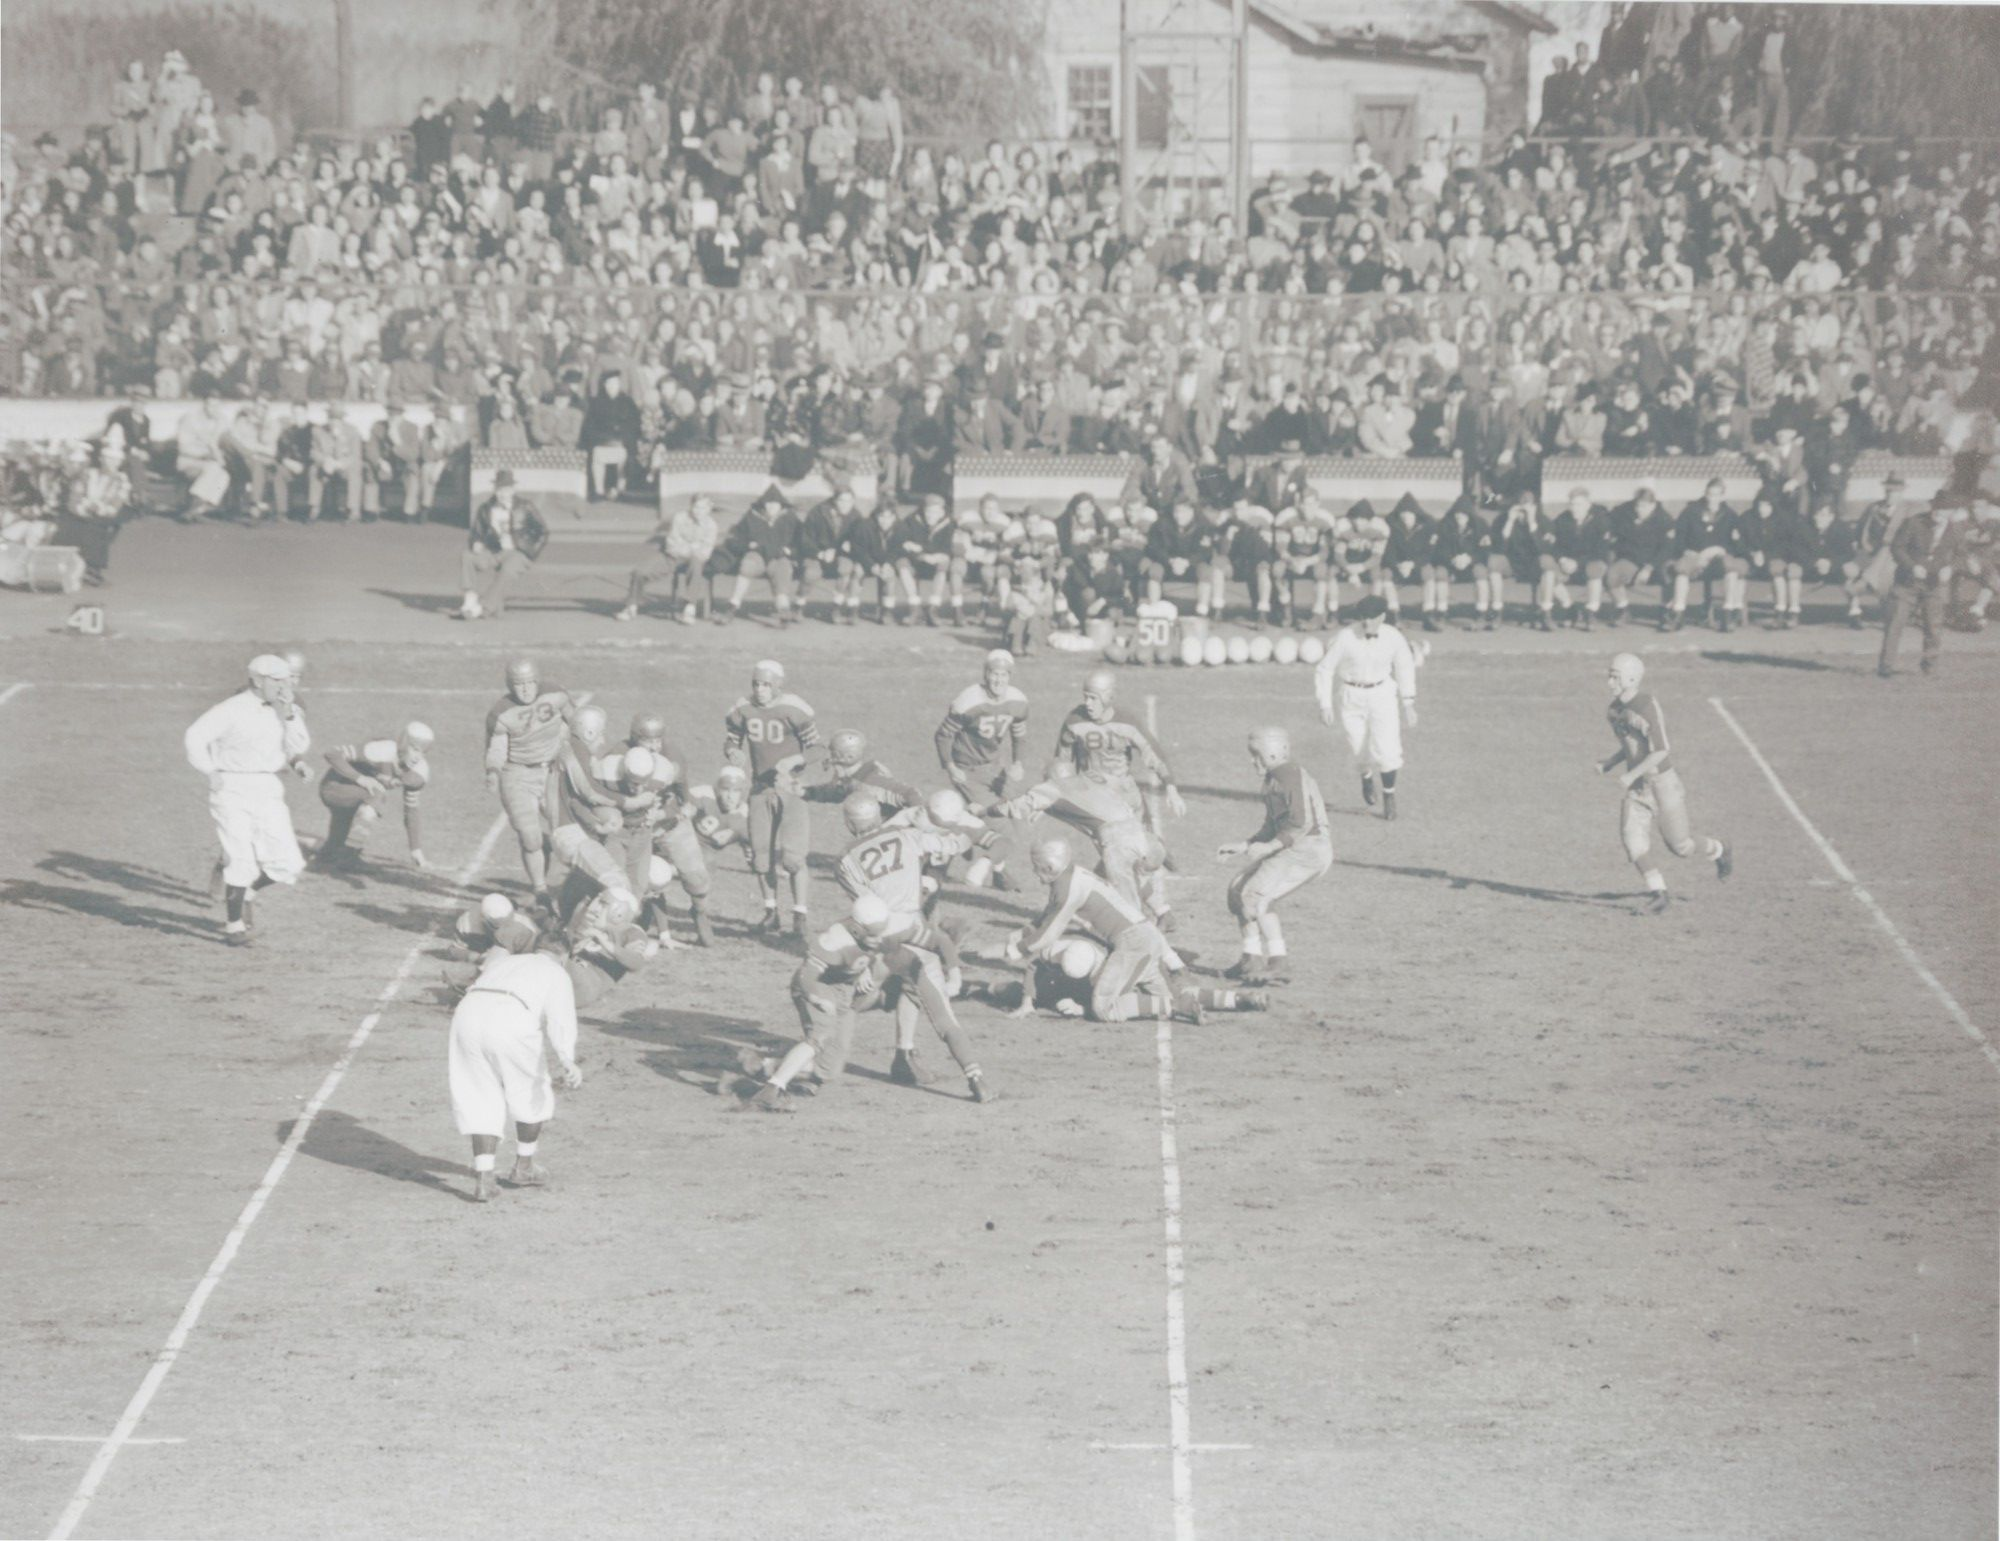 A Freeport Baldwin game in the 1940s was played at Freeport municipal Stadium.